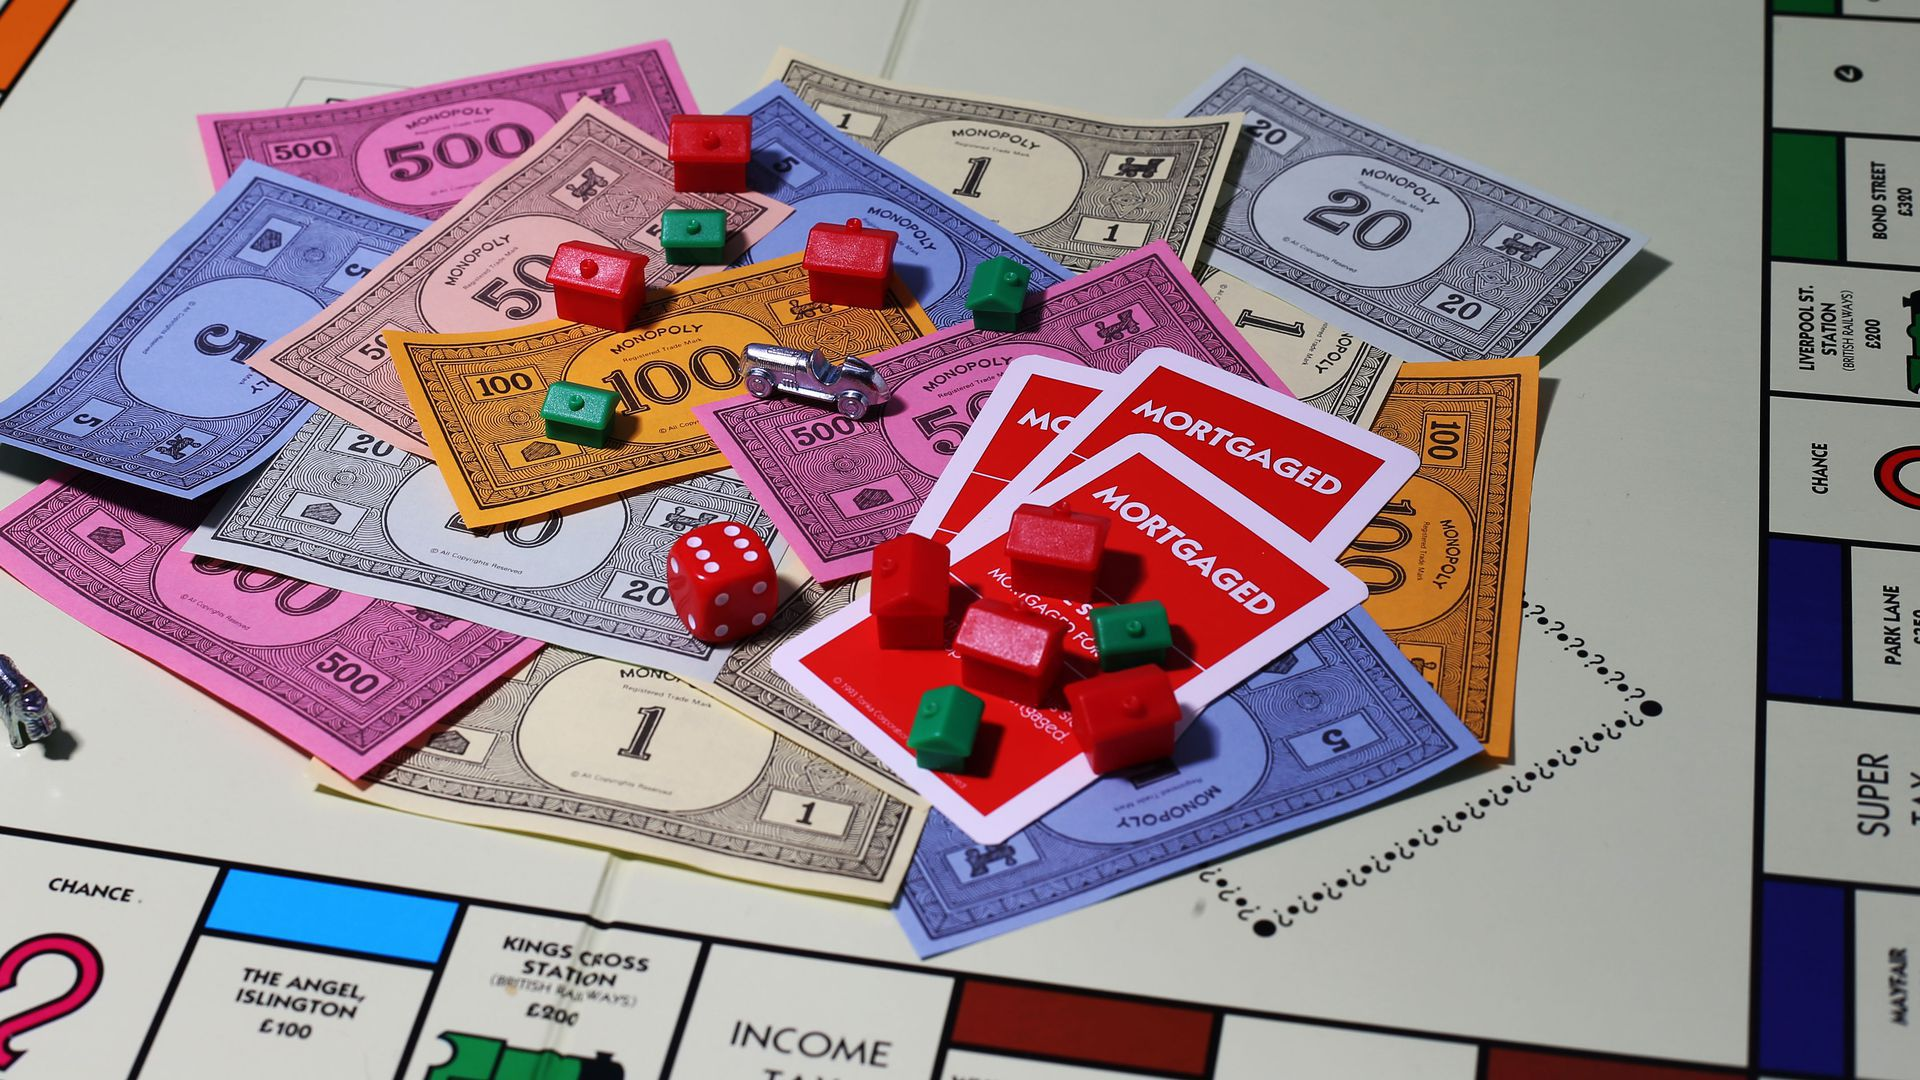 An image of a Monopoly game in progress